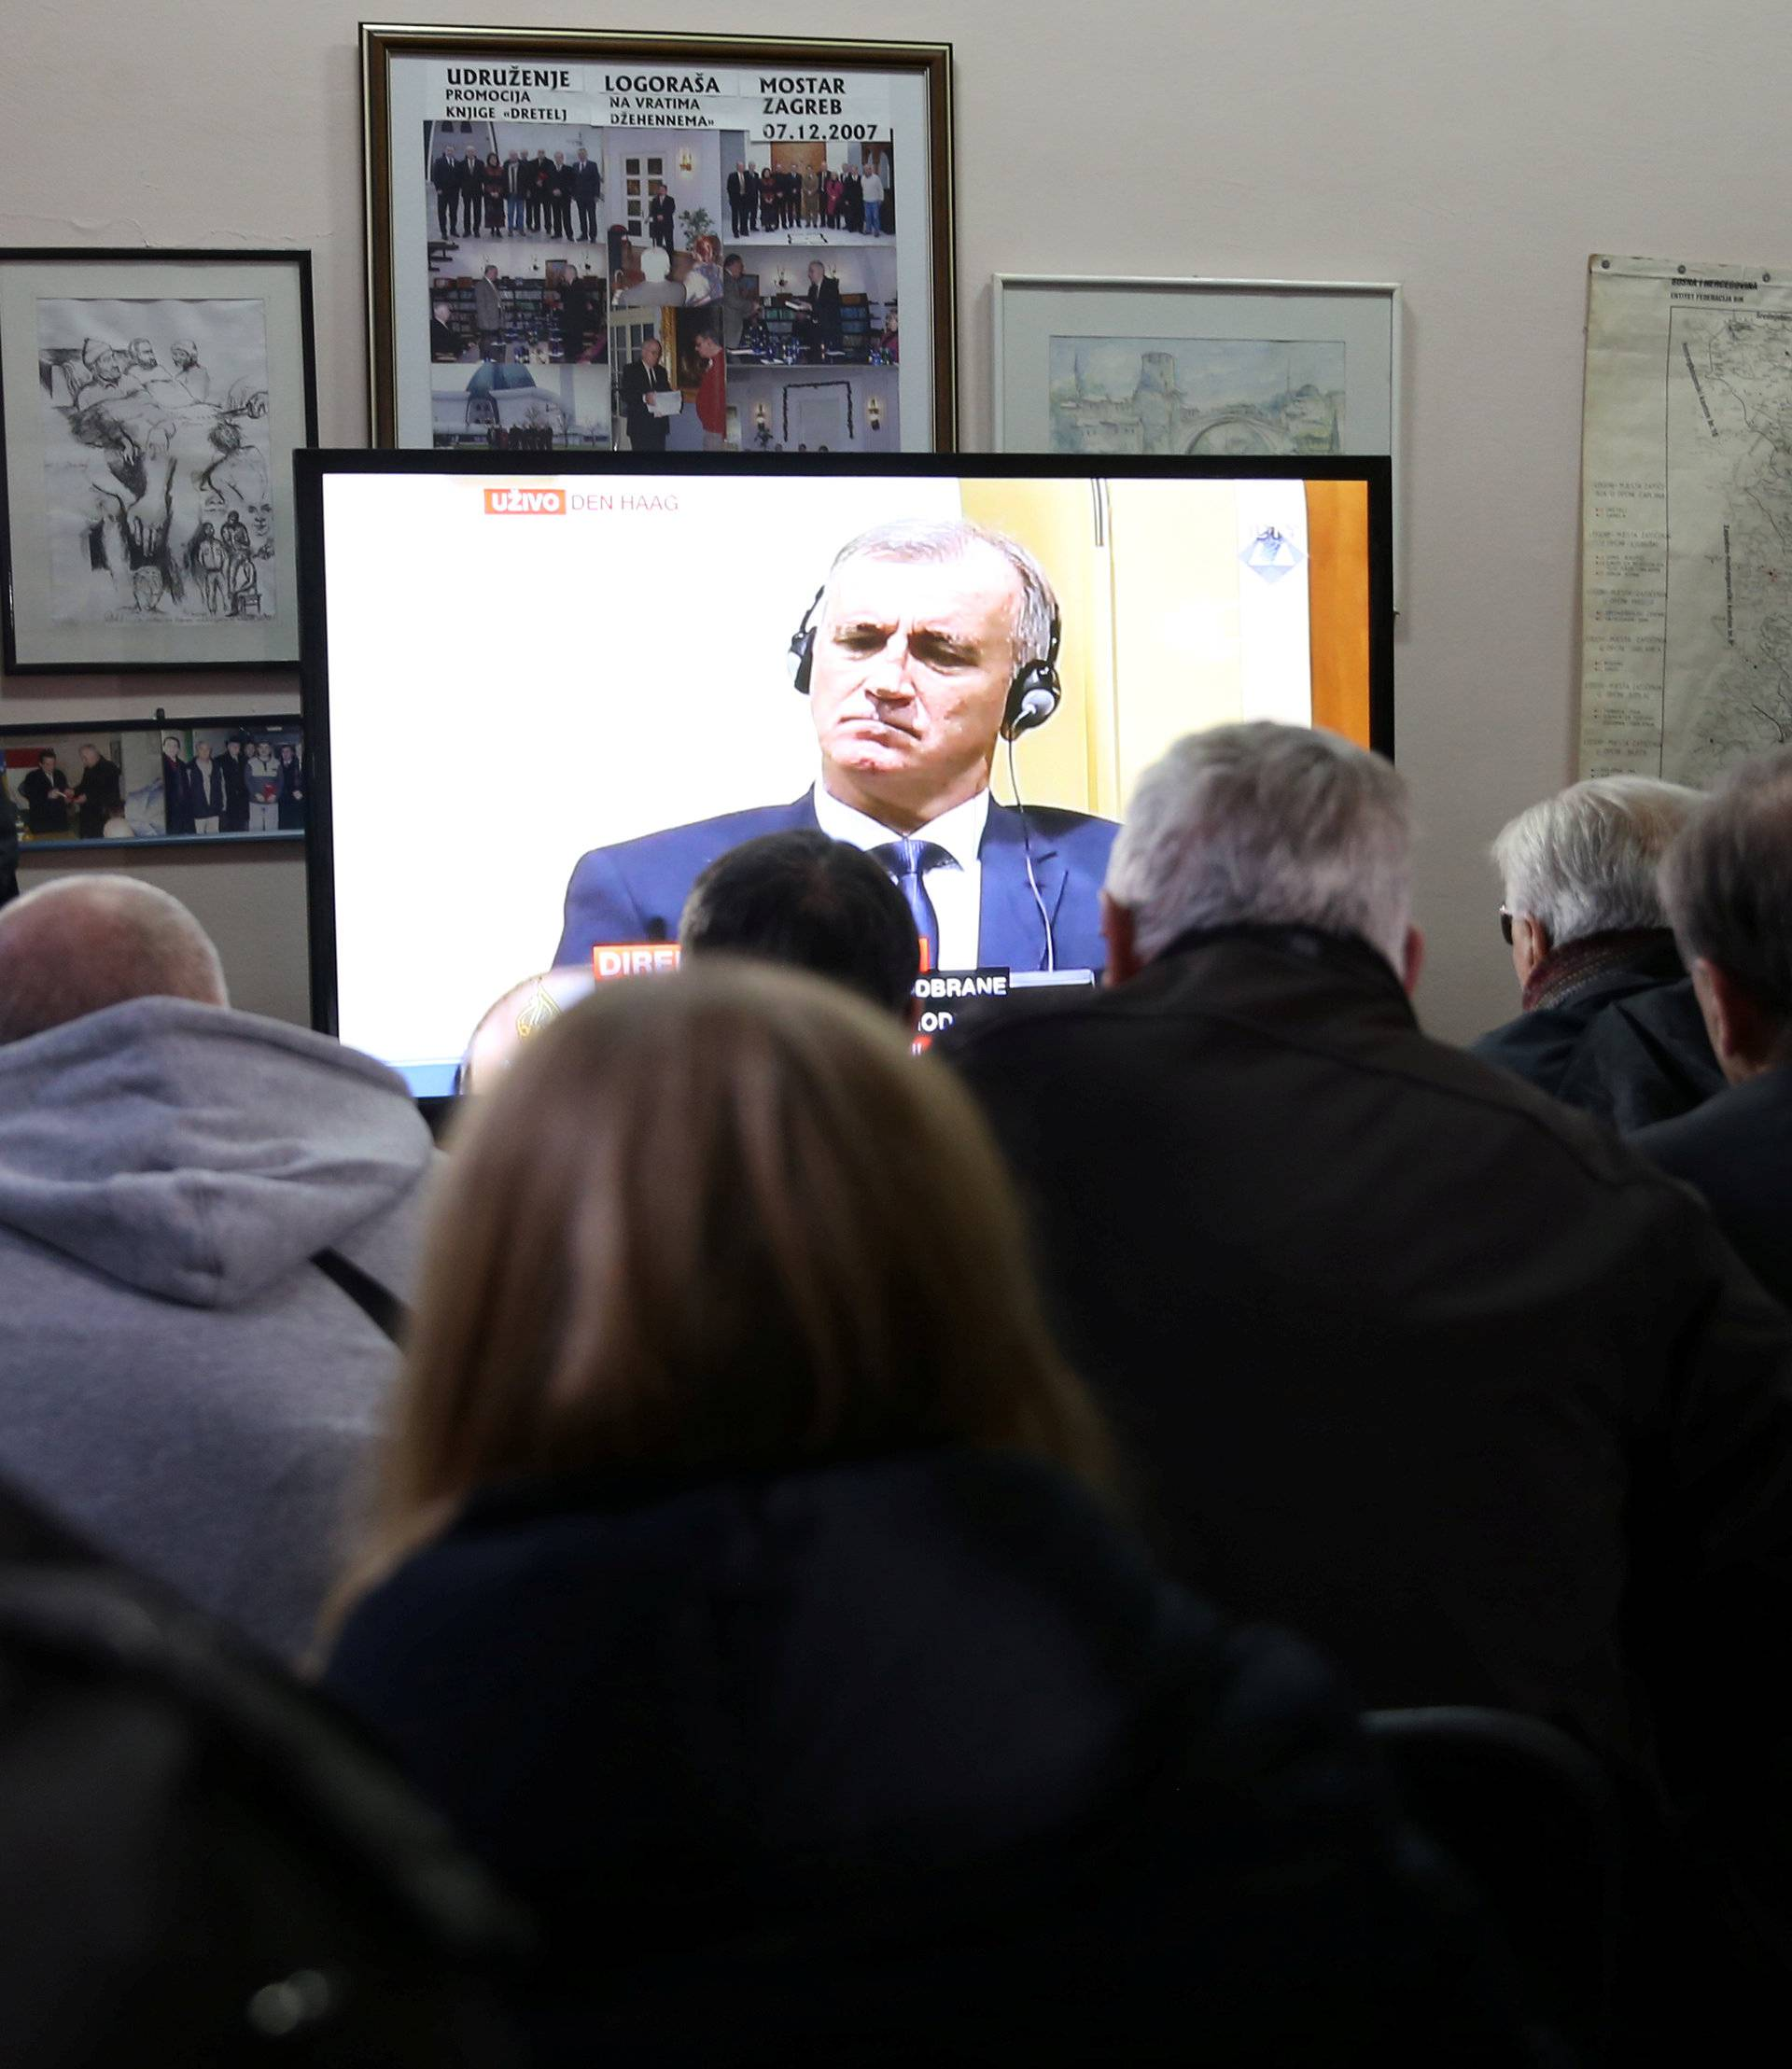 Union of former detainees watch a television broadcast of the appeal trial in the Hague, Netherlands, for six Bosnian Croat senior wartime officials accused of war crimes against Muslims in Bosnia's 1992-1995 war, in Mostar